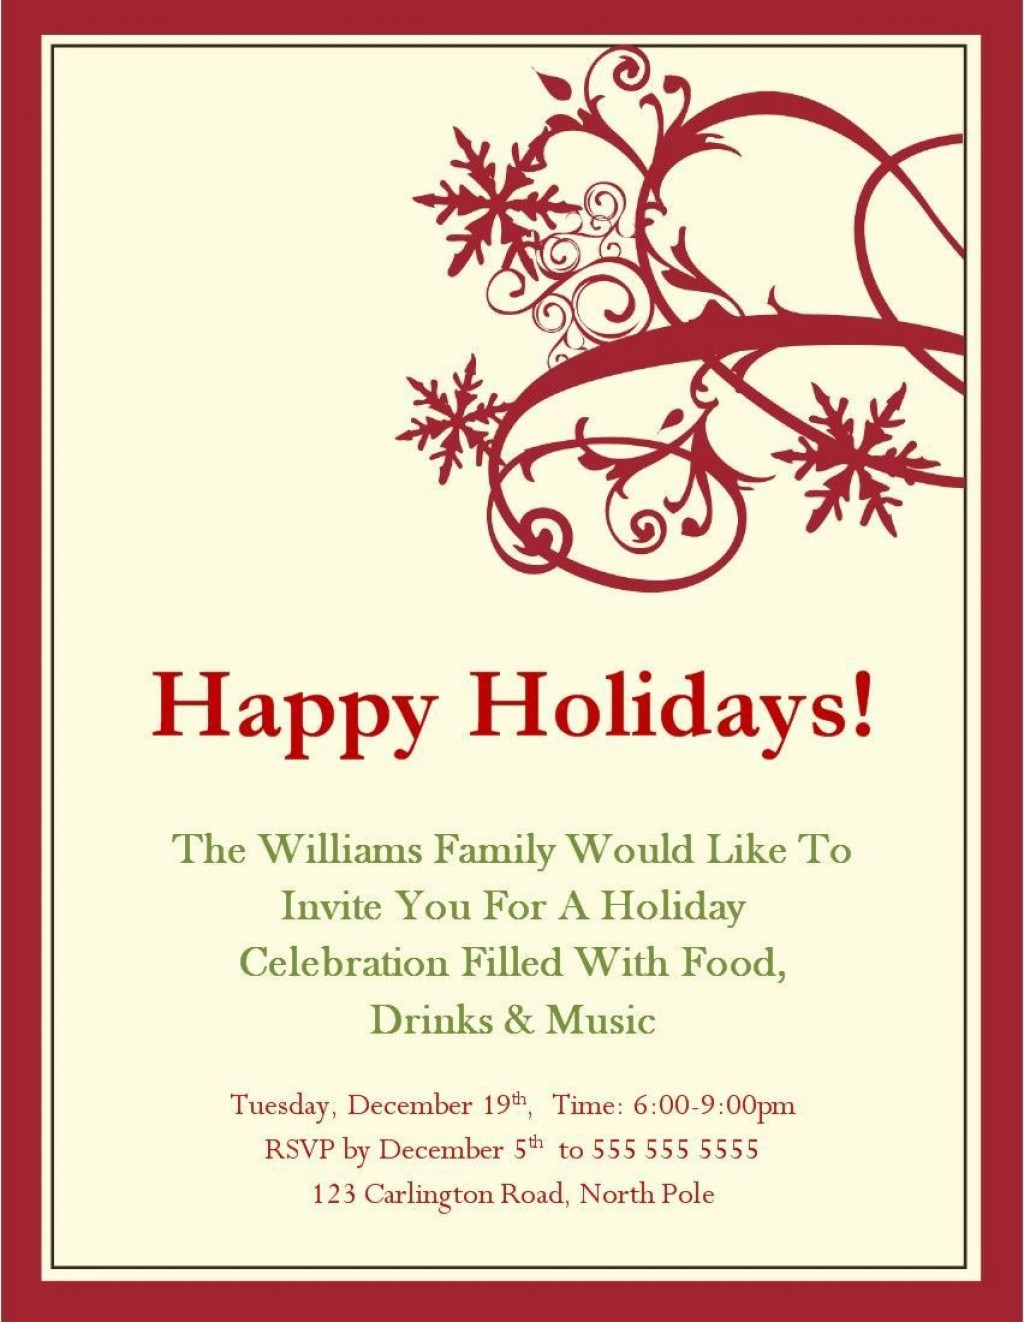 004 Sensational Free Holiday Party Invitation Template For Word Inspiration Large